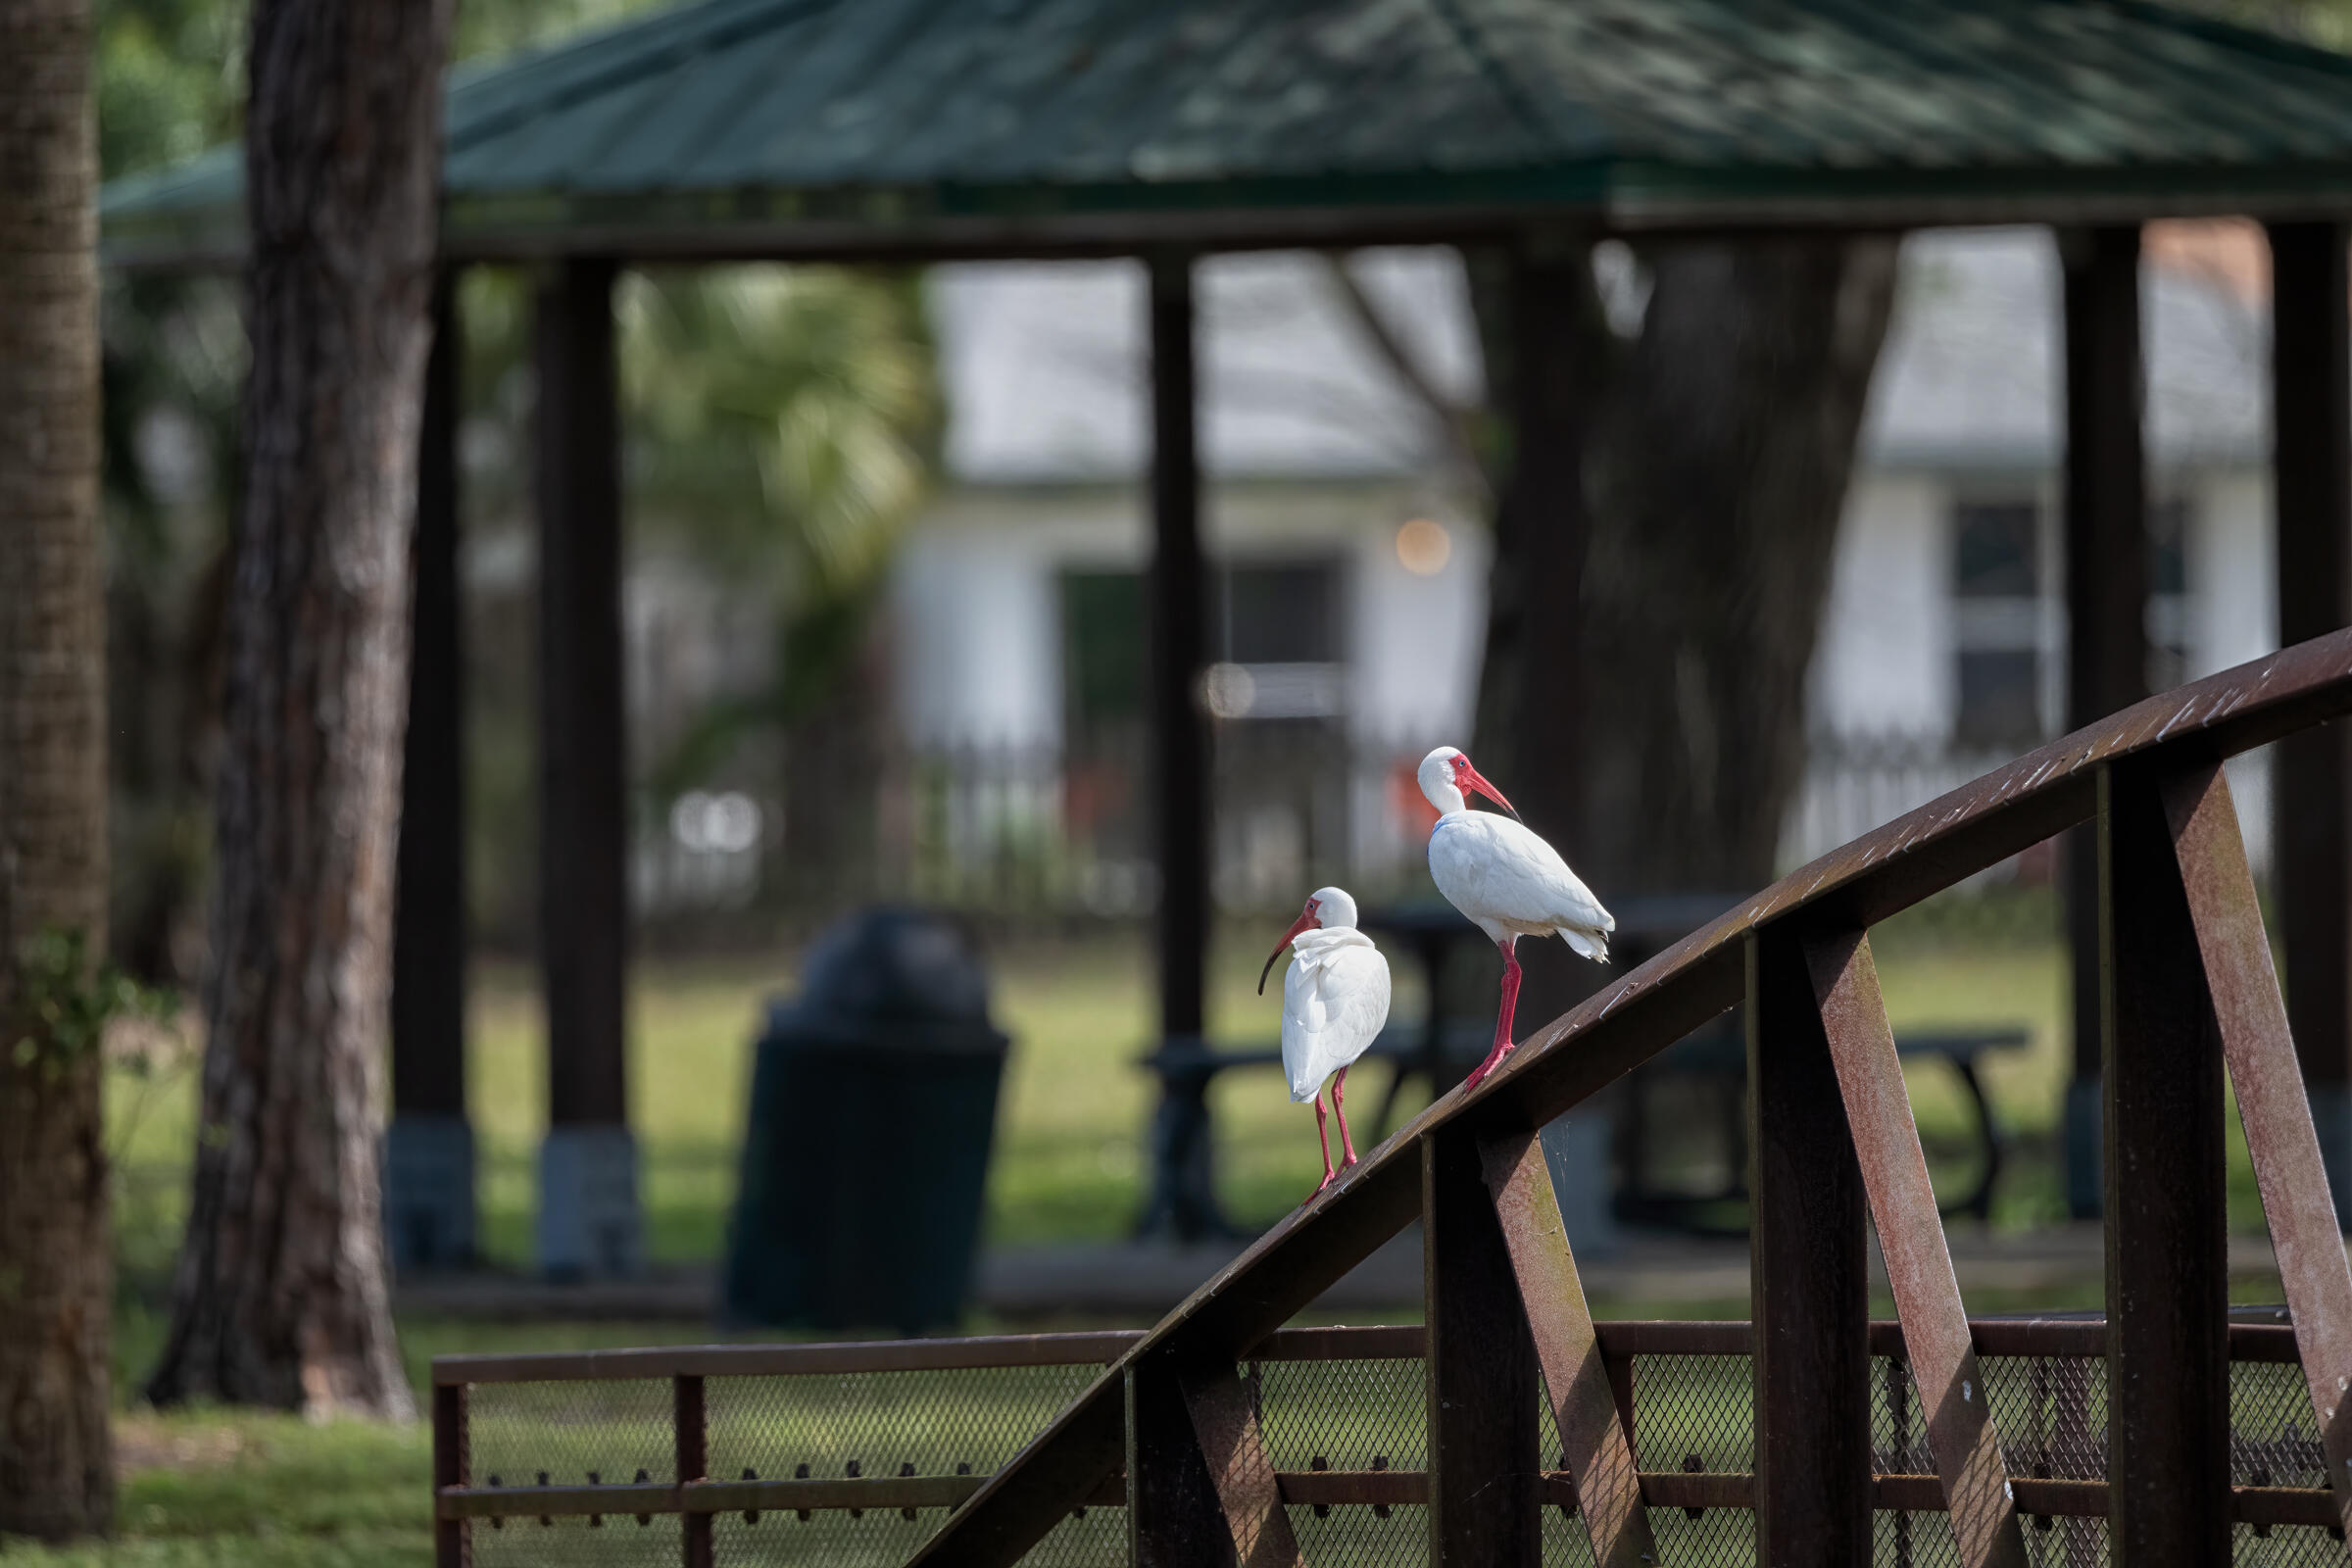 Two White Ibises, with their backs to the camera and looking in opposite directions, perch on a bridge in a suburban park. A blurry trash can and pavilion are in the background.